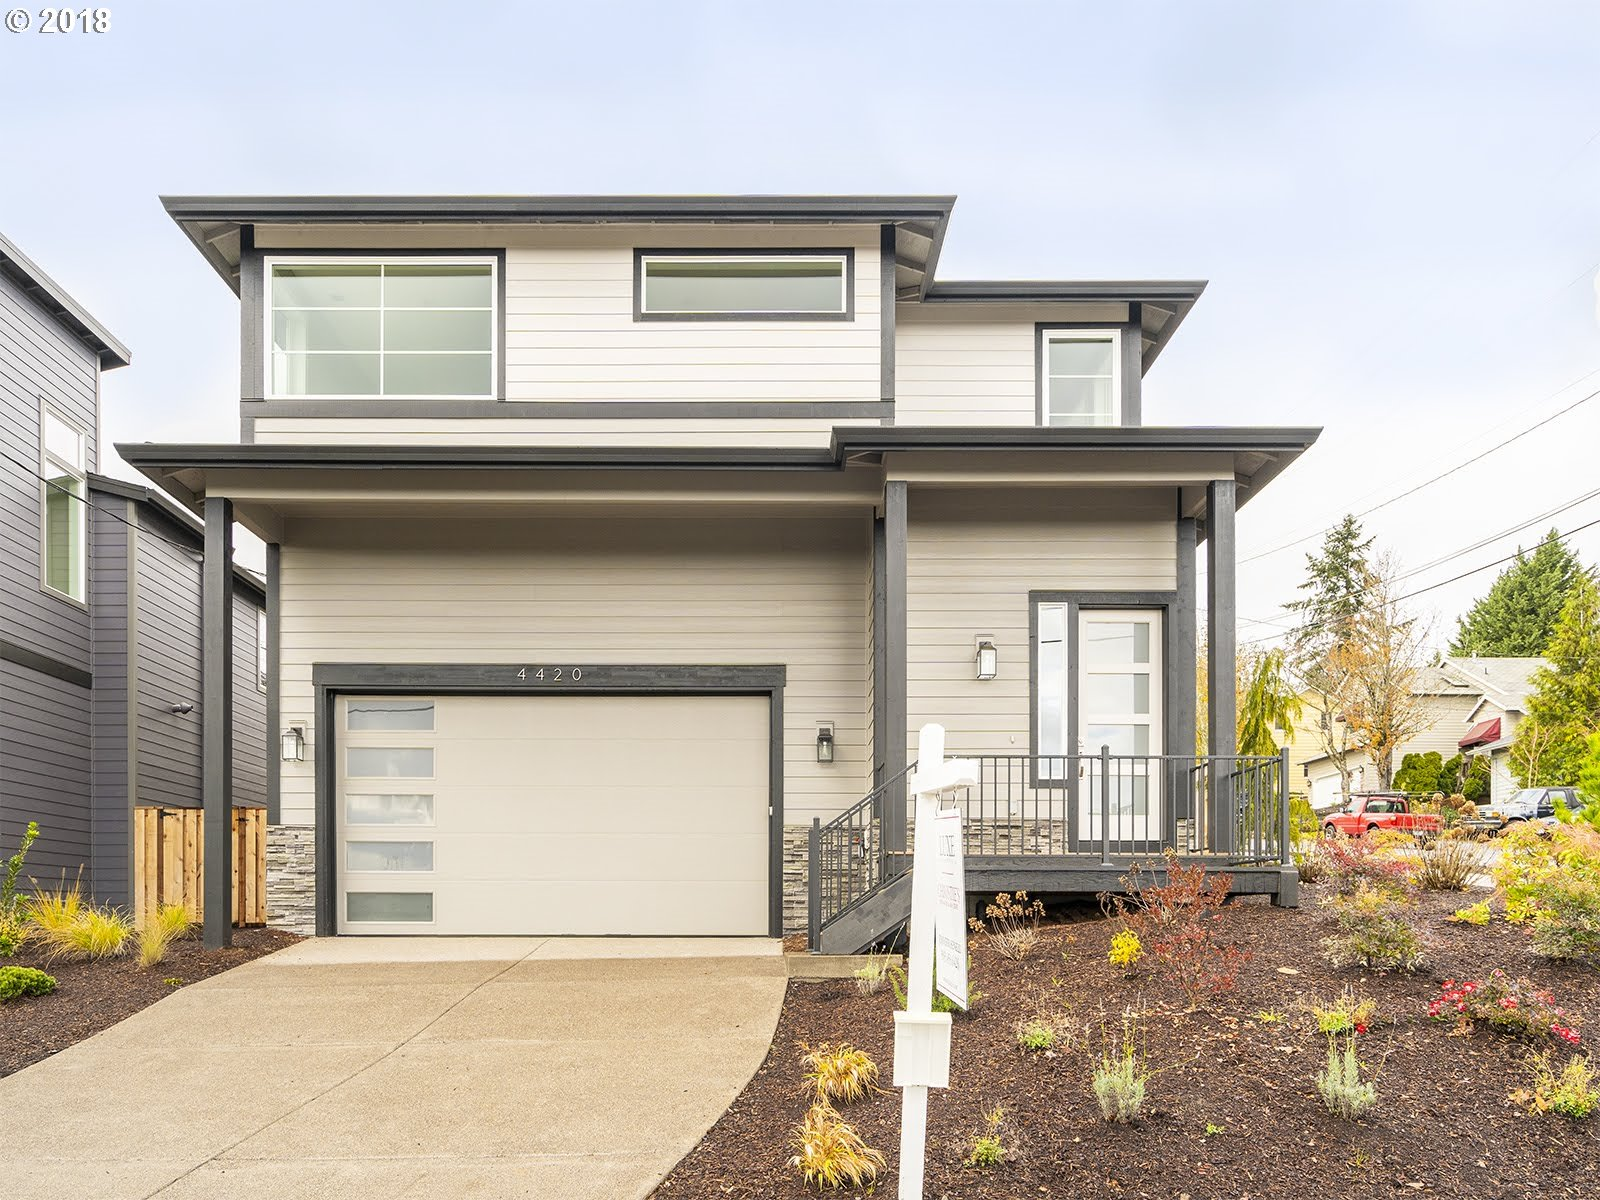 Brand new contemporary home on corner lot! Views of Mt. Hood! Move-in ready, open great room floorplan, hardwoods, S/S appliances, quartz counters, 3 bedrooms plus huge bonus room (or opt 4th). 5 piece master bath & walkin closet! Fenced backyard & covered patio perfect for entertaining.